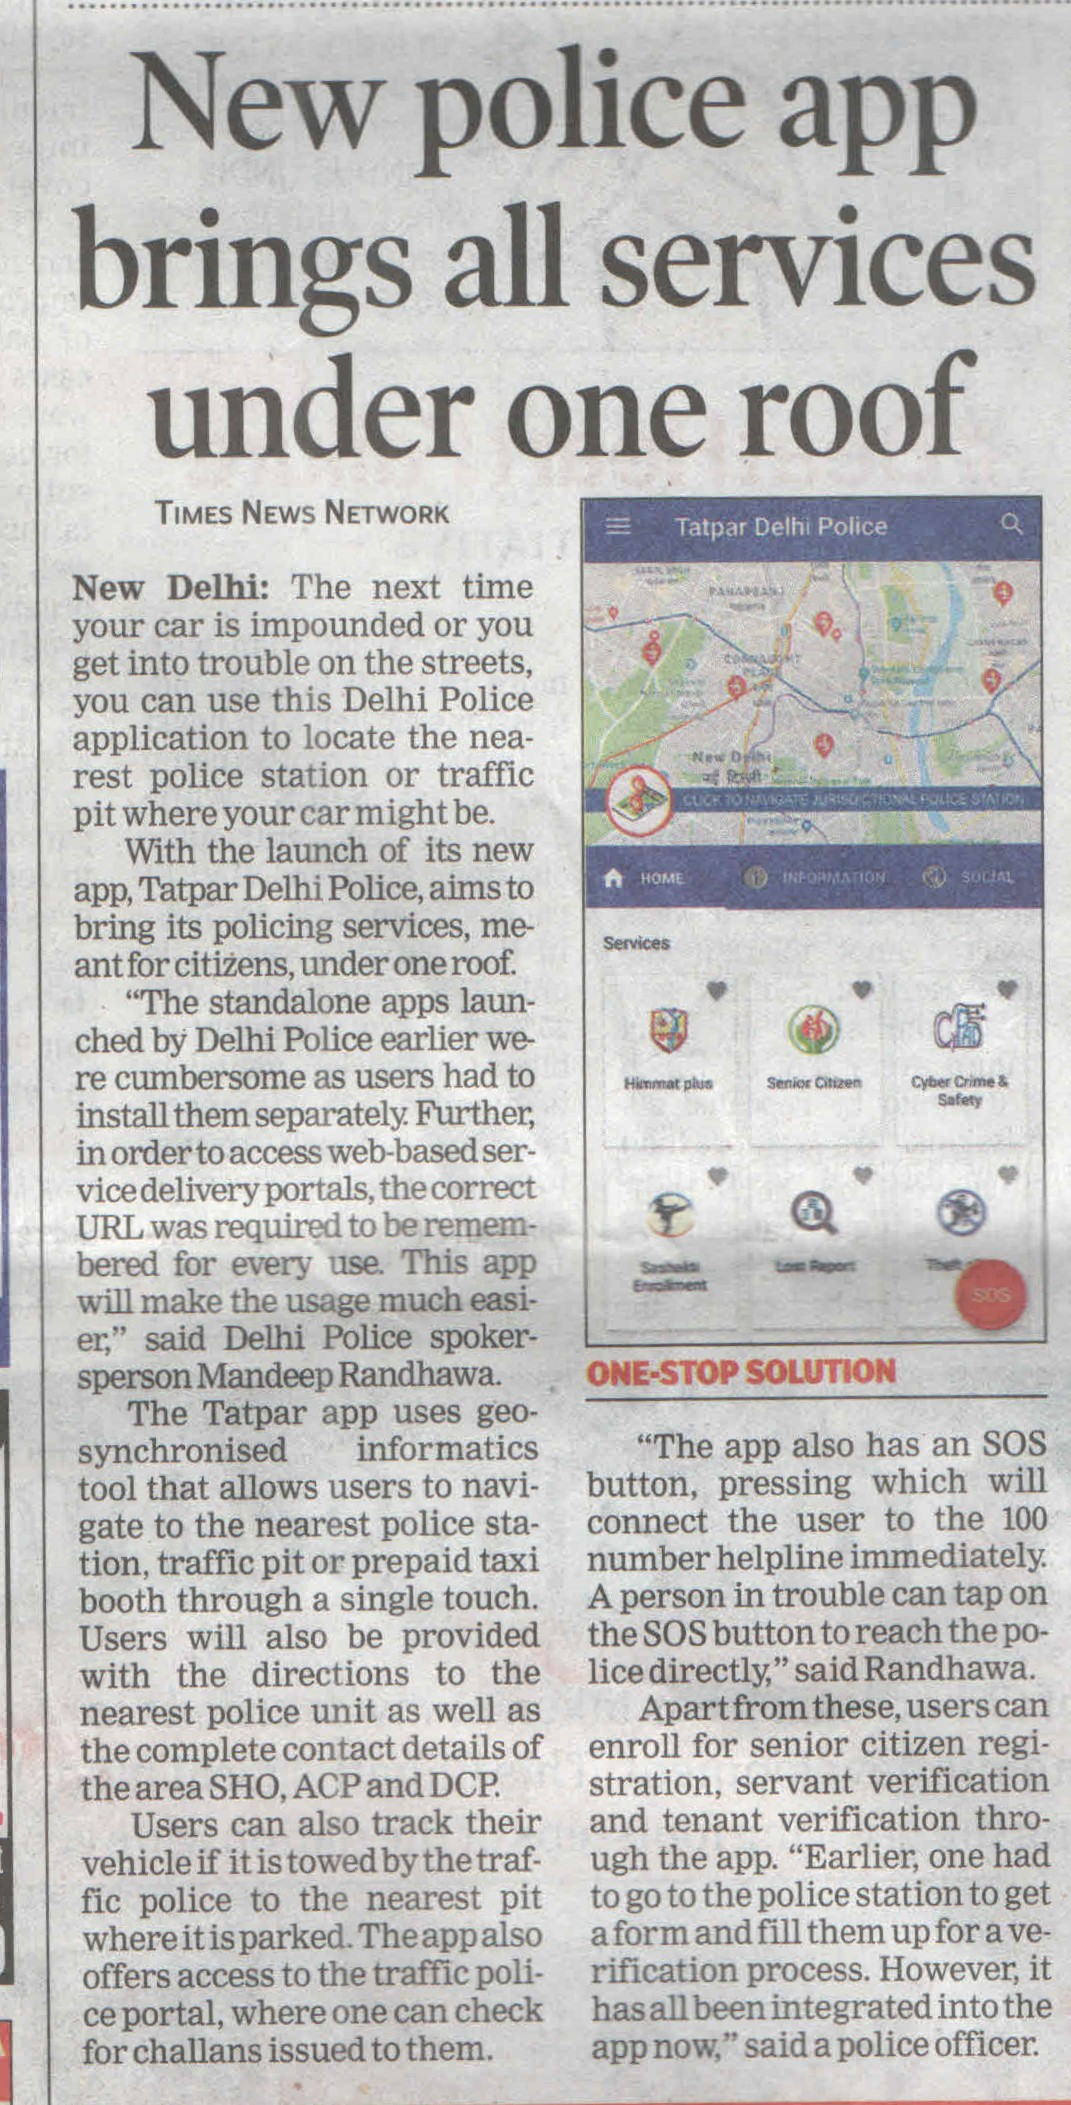 New Police app brings all services under one roof